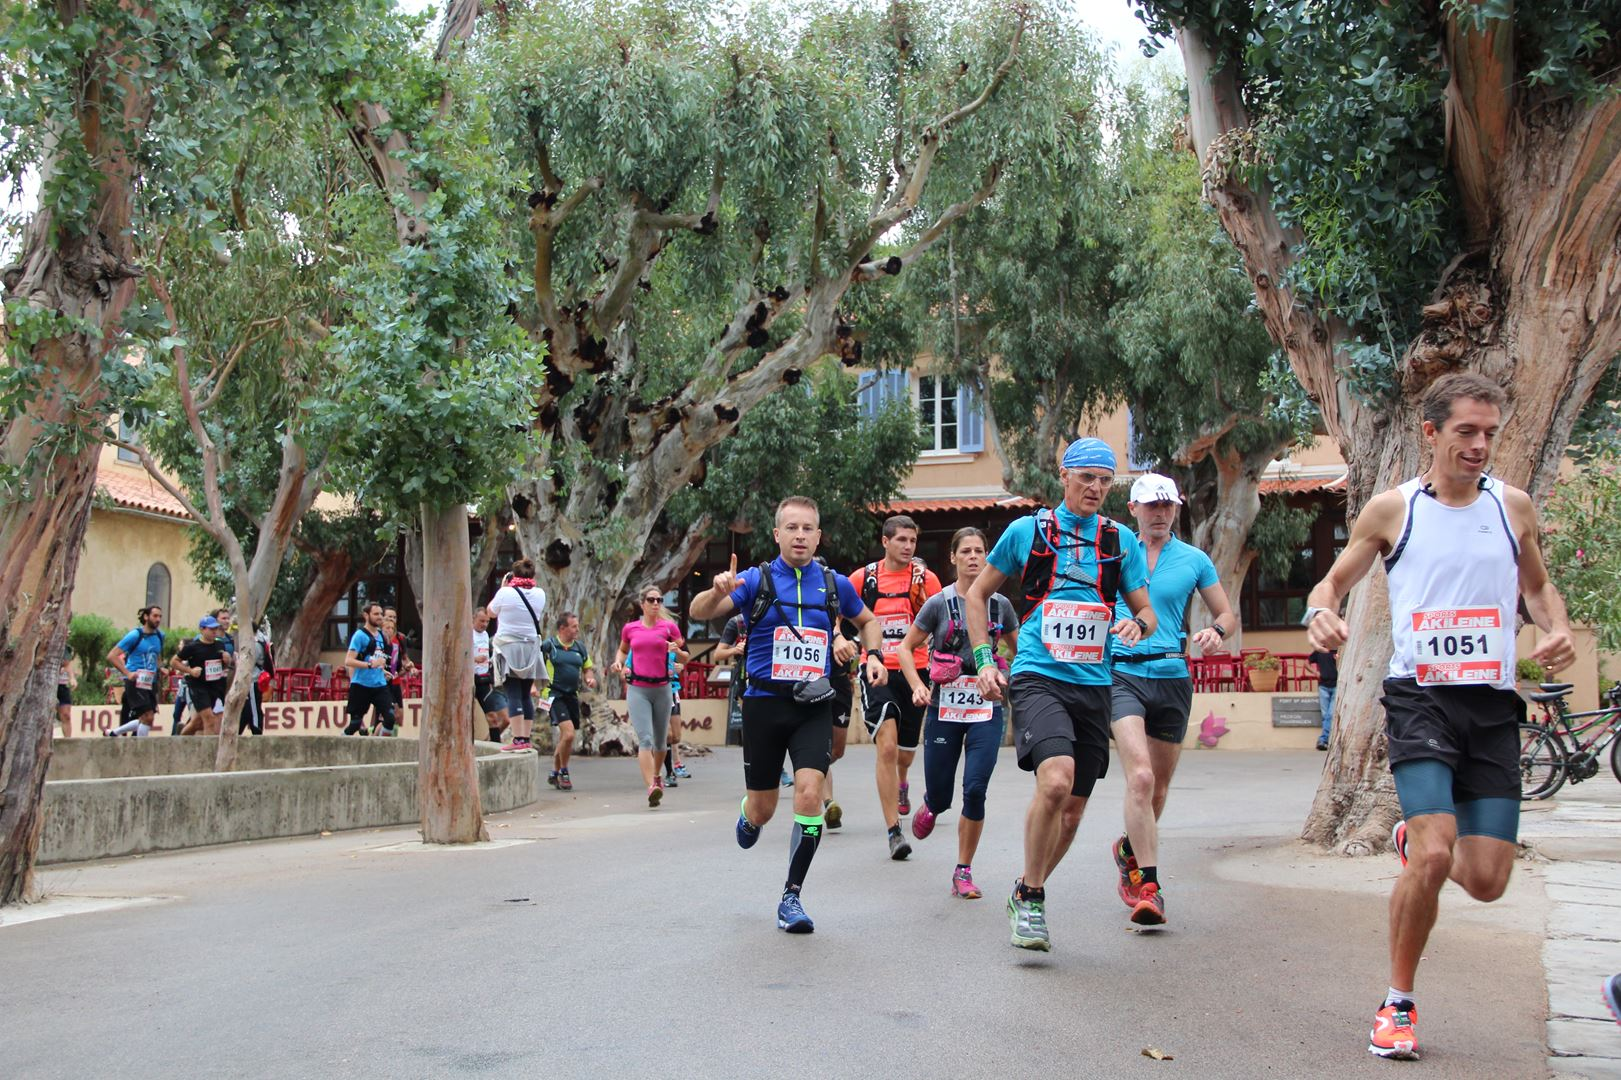 copie 0 2. D®part 22 - DECOUVERTE : LA 3EME EDITION DU TRAIL DE PORQUEROLLES (83) -01-10-2016